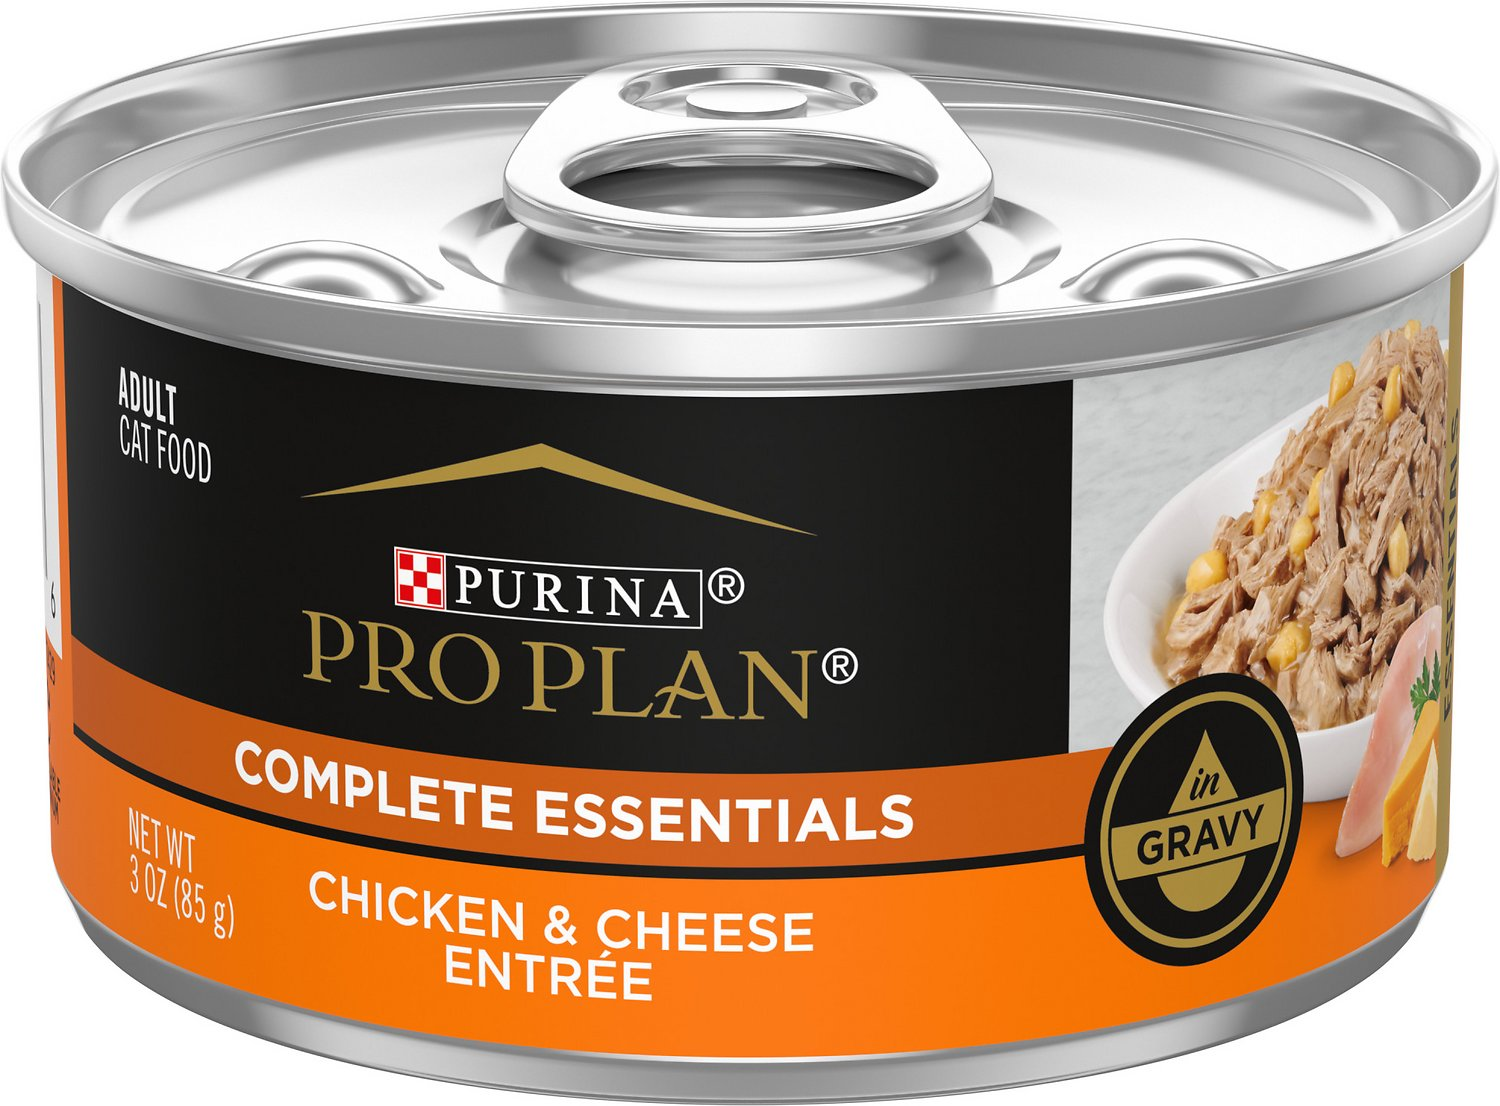 Purina Pro Plan Chicken & Cheese Entree in Gravy Canned